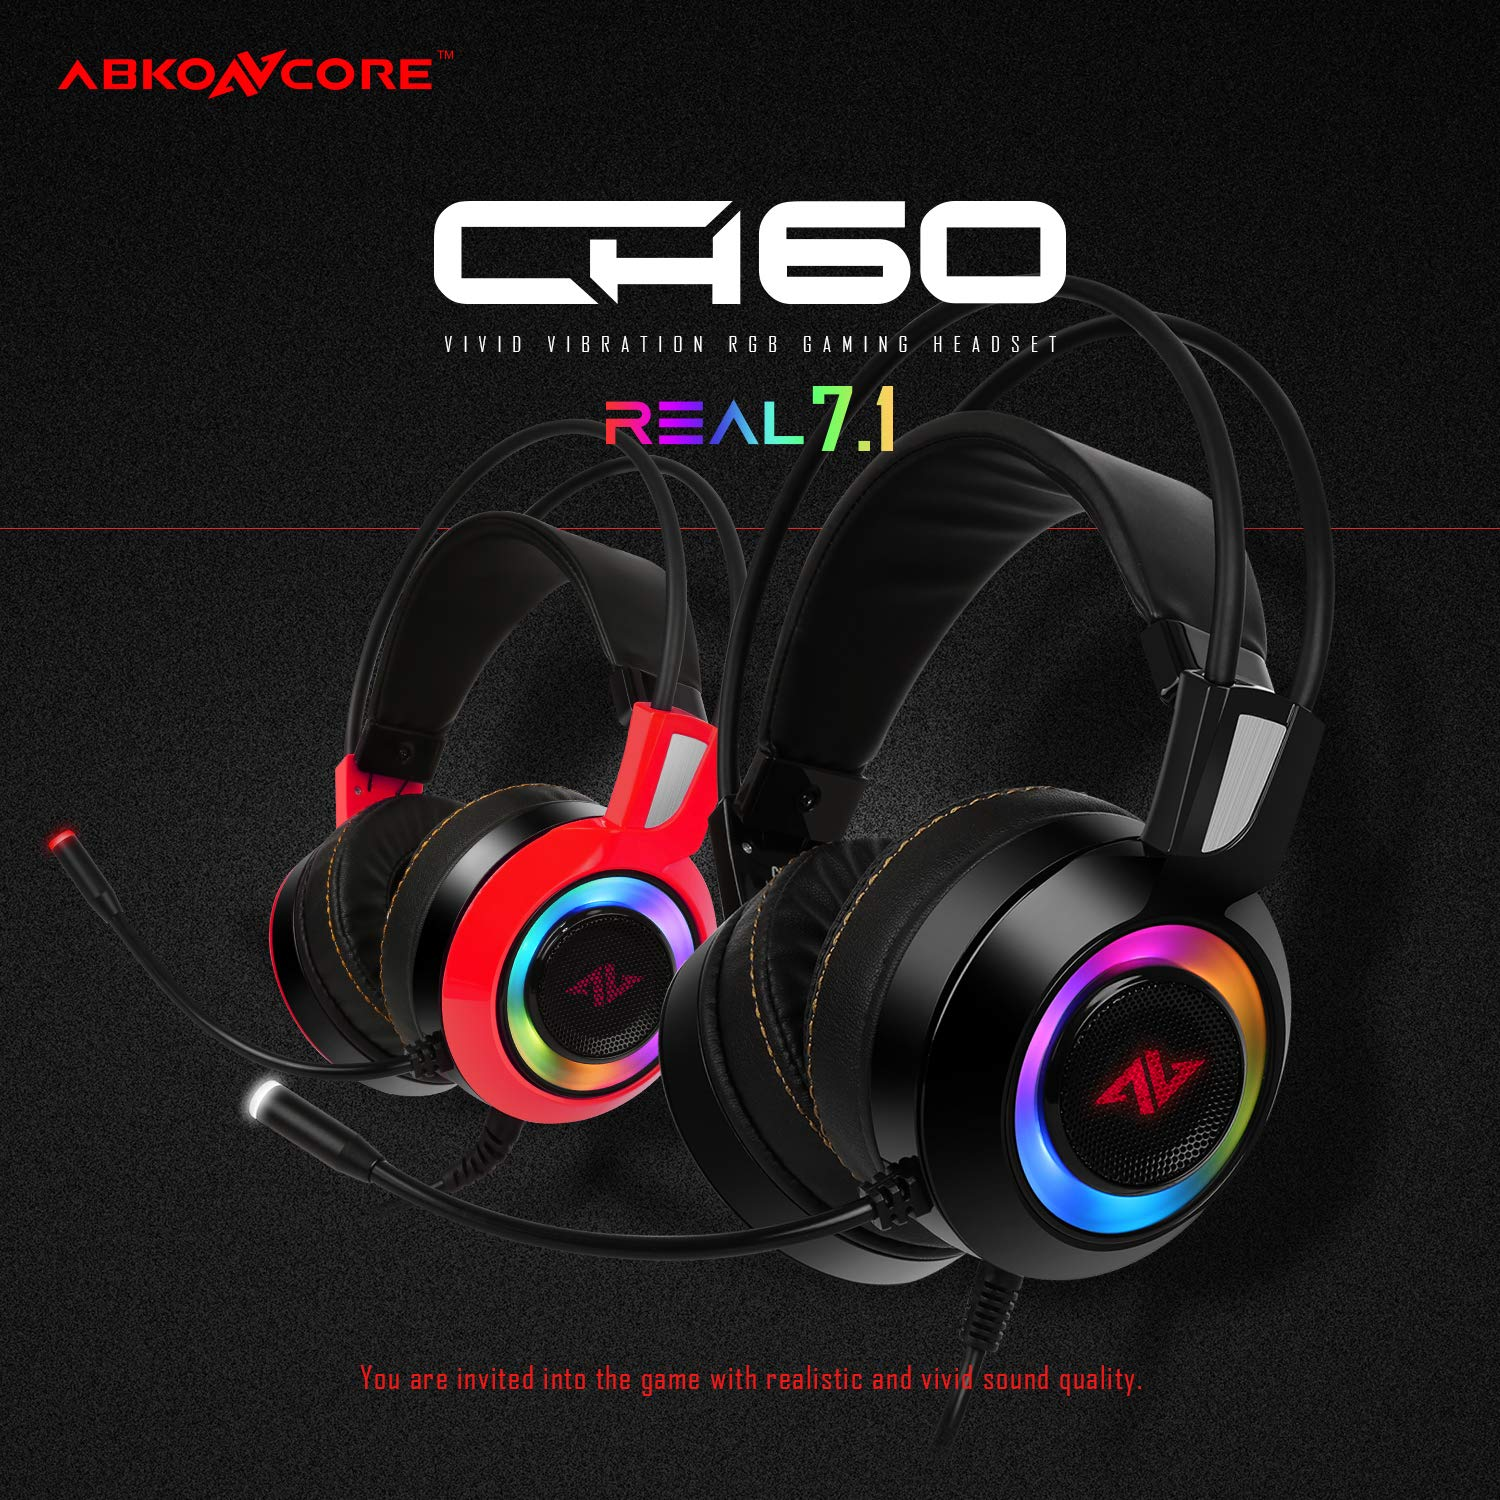 ABKONCORE CH60 True 7.1, Bass Vibration, Gaming Headset for Gaming PC, Gaming Laptop, USB Headset, Noise Cancelling Over Ear Headphones with Flexible Microphone, LED Light, in-line Remote Controller